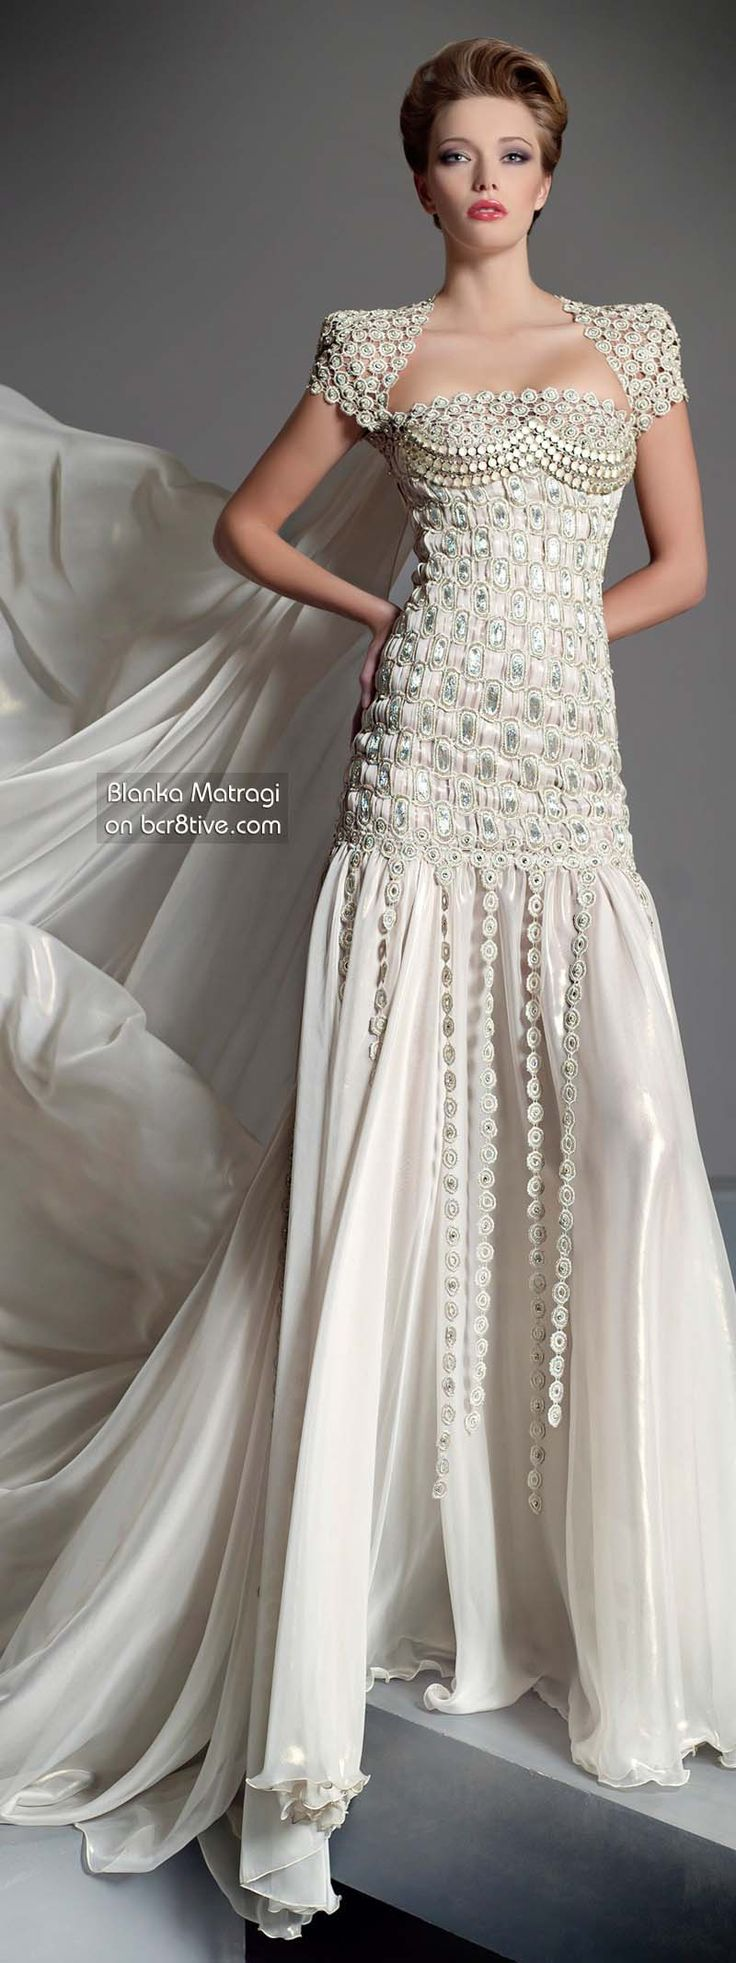 Hideous wedding dresses  Chanel Spring  Haute Couture  Wedding Gowns and Brides